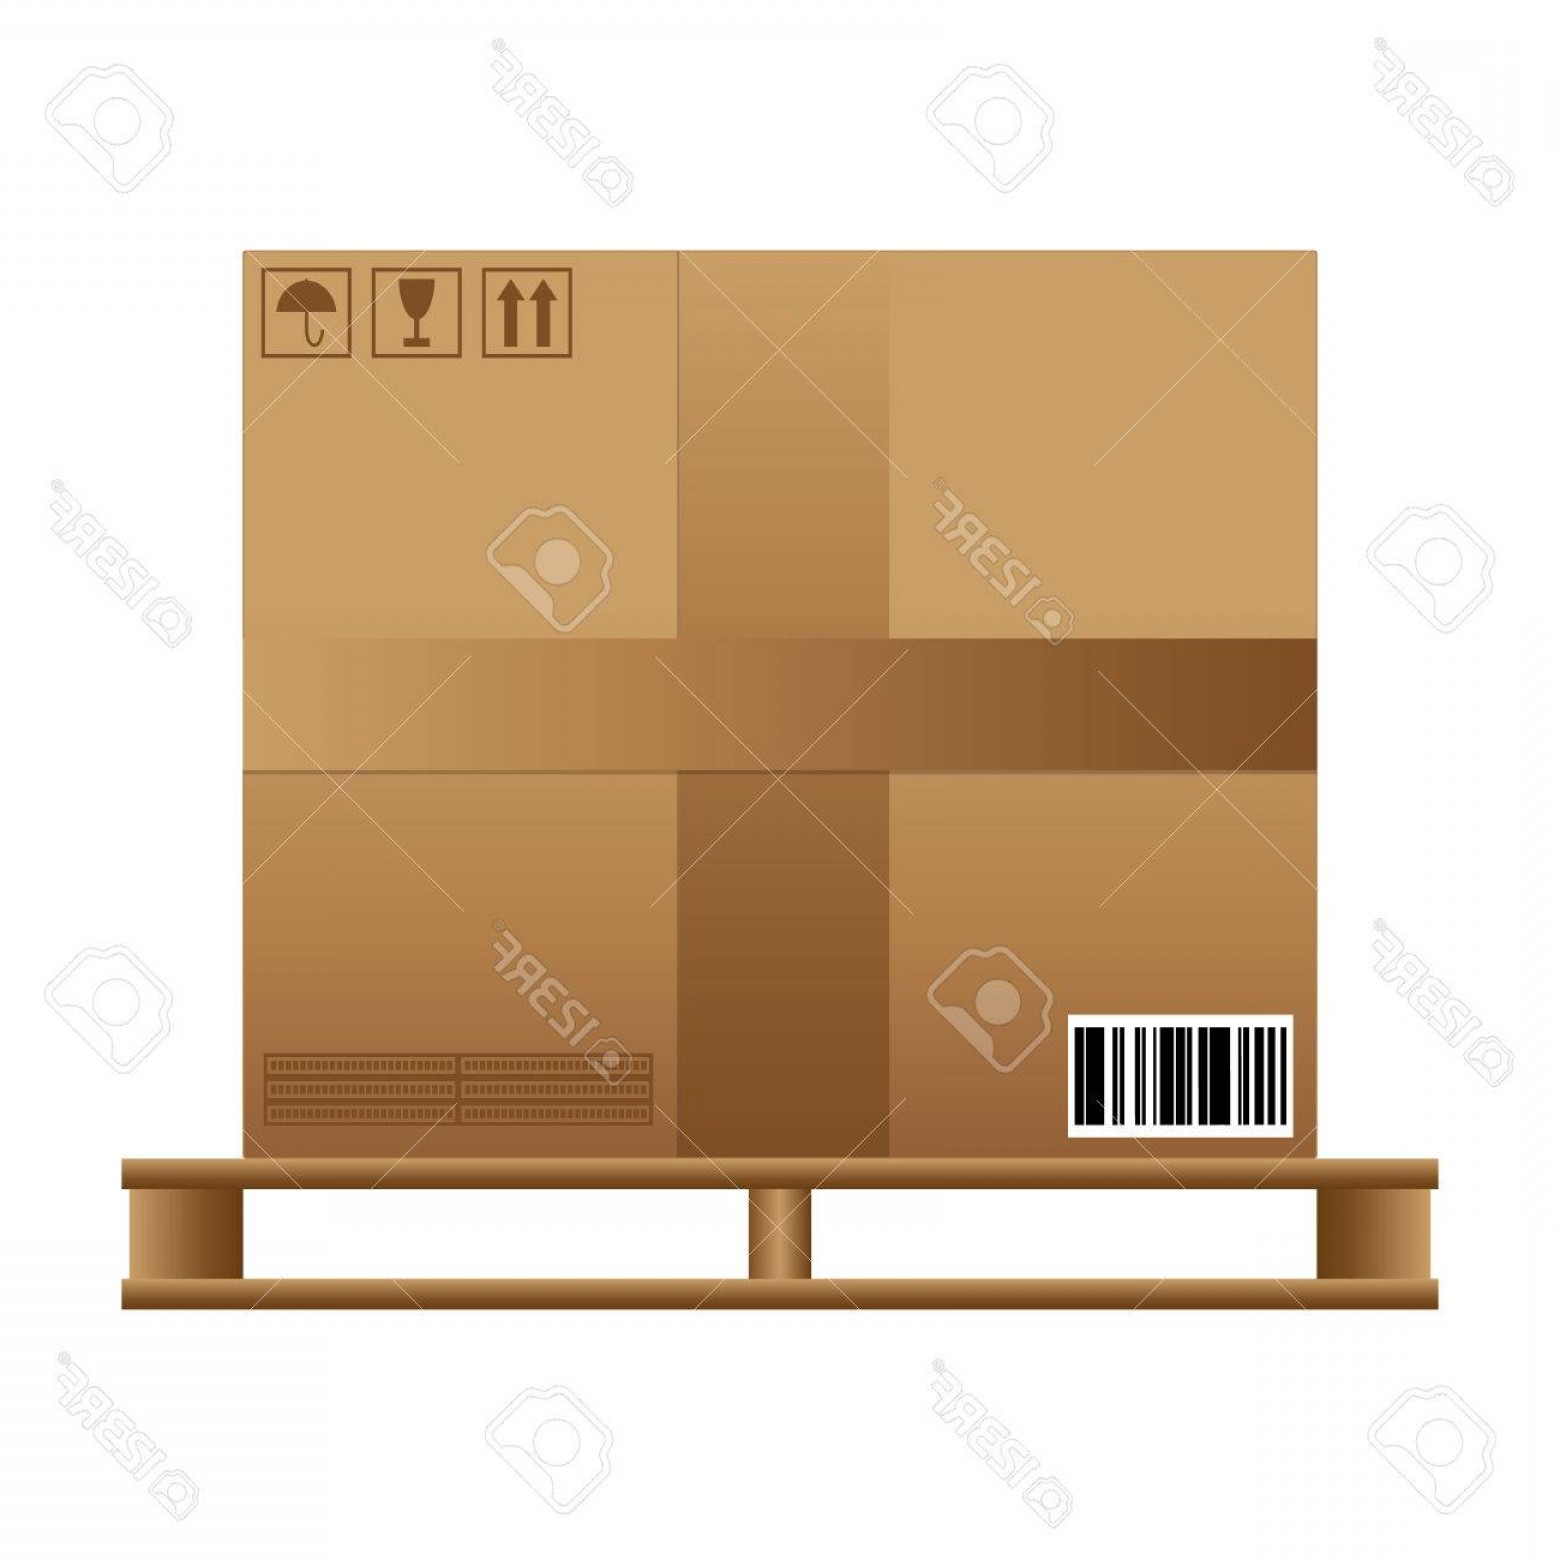 Pallet Vector Graphic: Photostock Vector Big Brown Closed Carton Delivery Box With Fragile Signs And Barcode On Wooden Pallet Vector Illustra